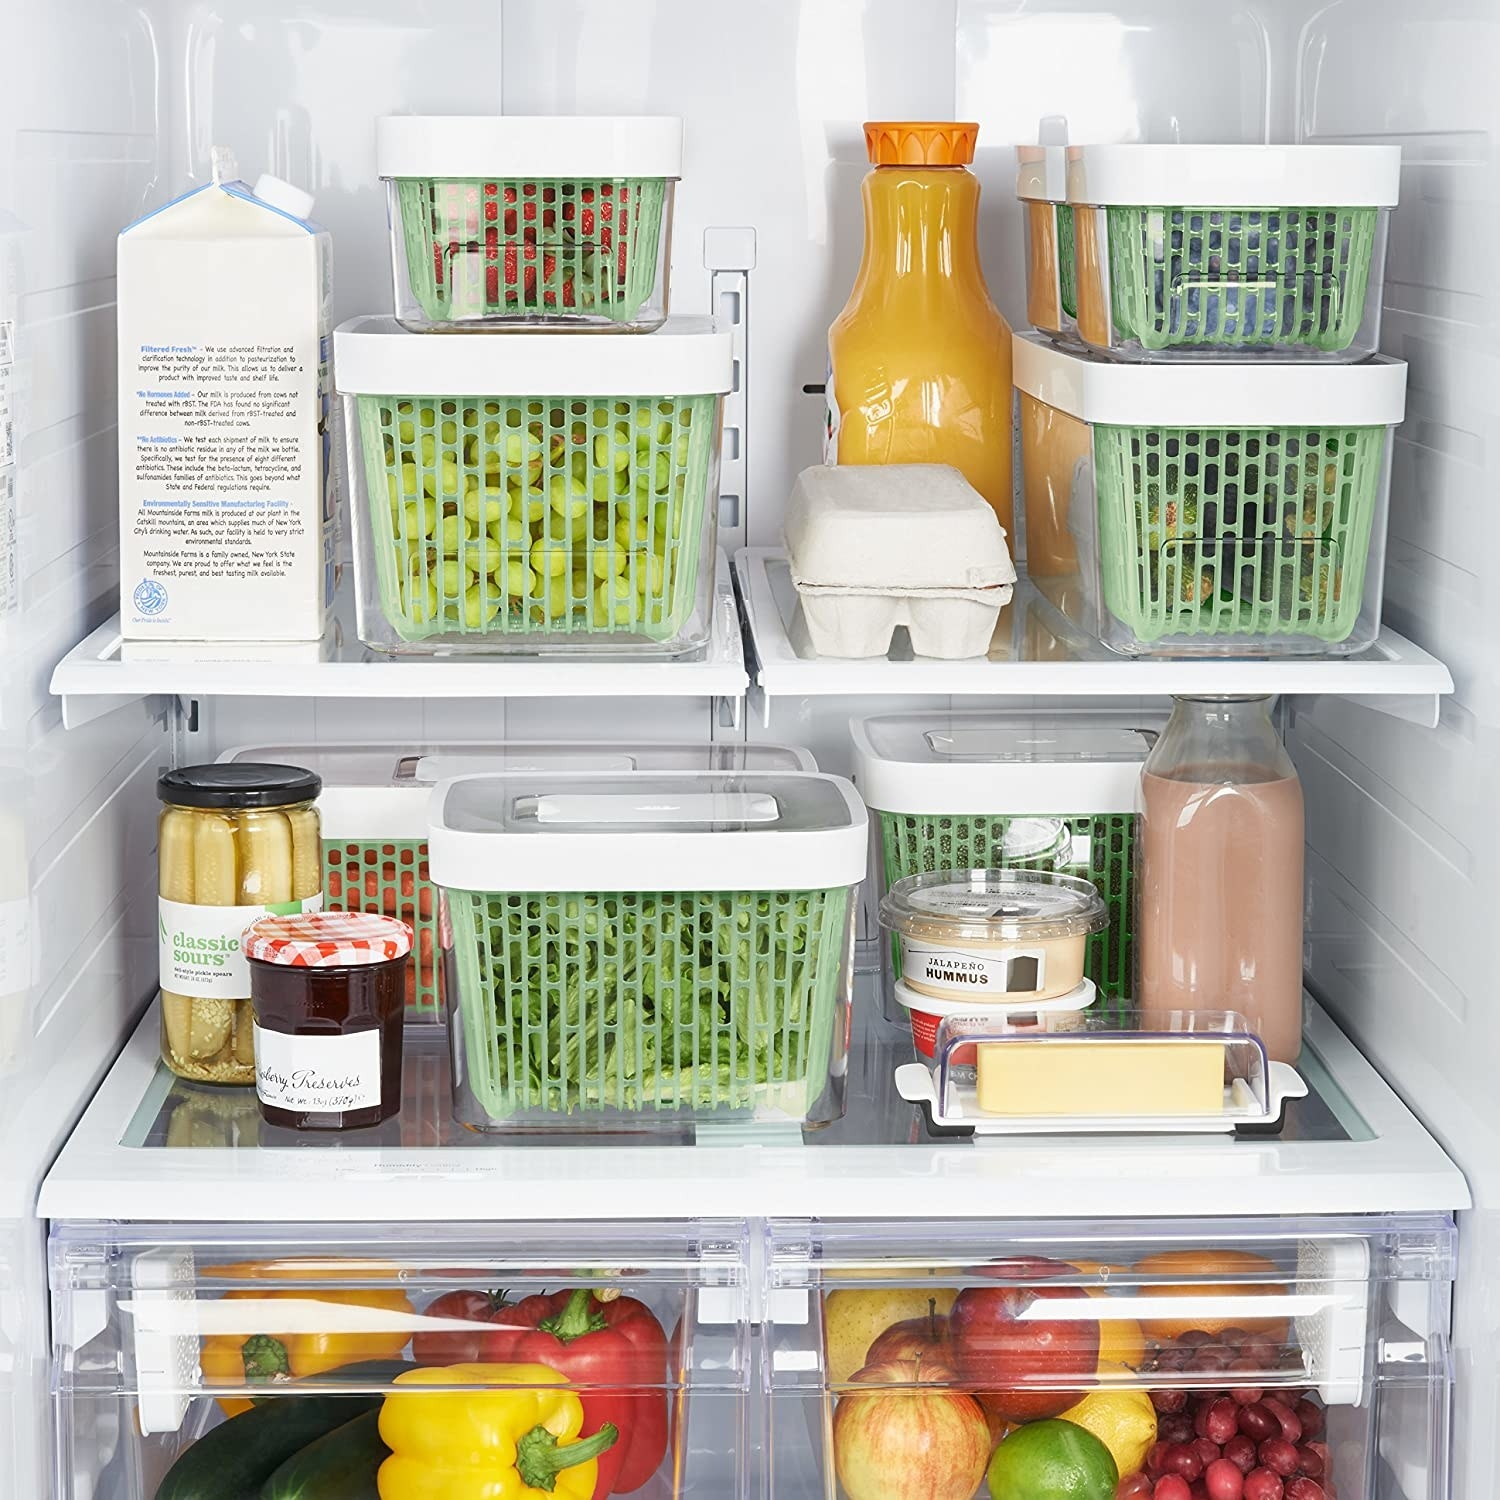 An open fridge with several produce savers stacked inside